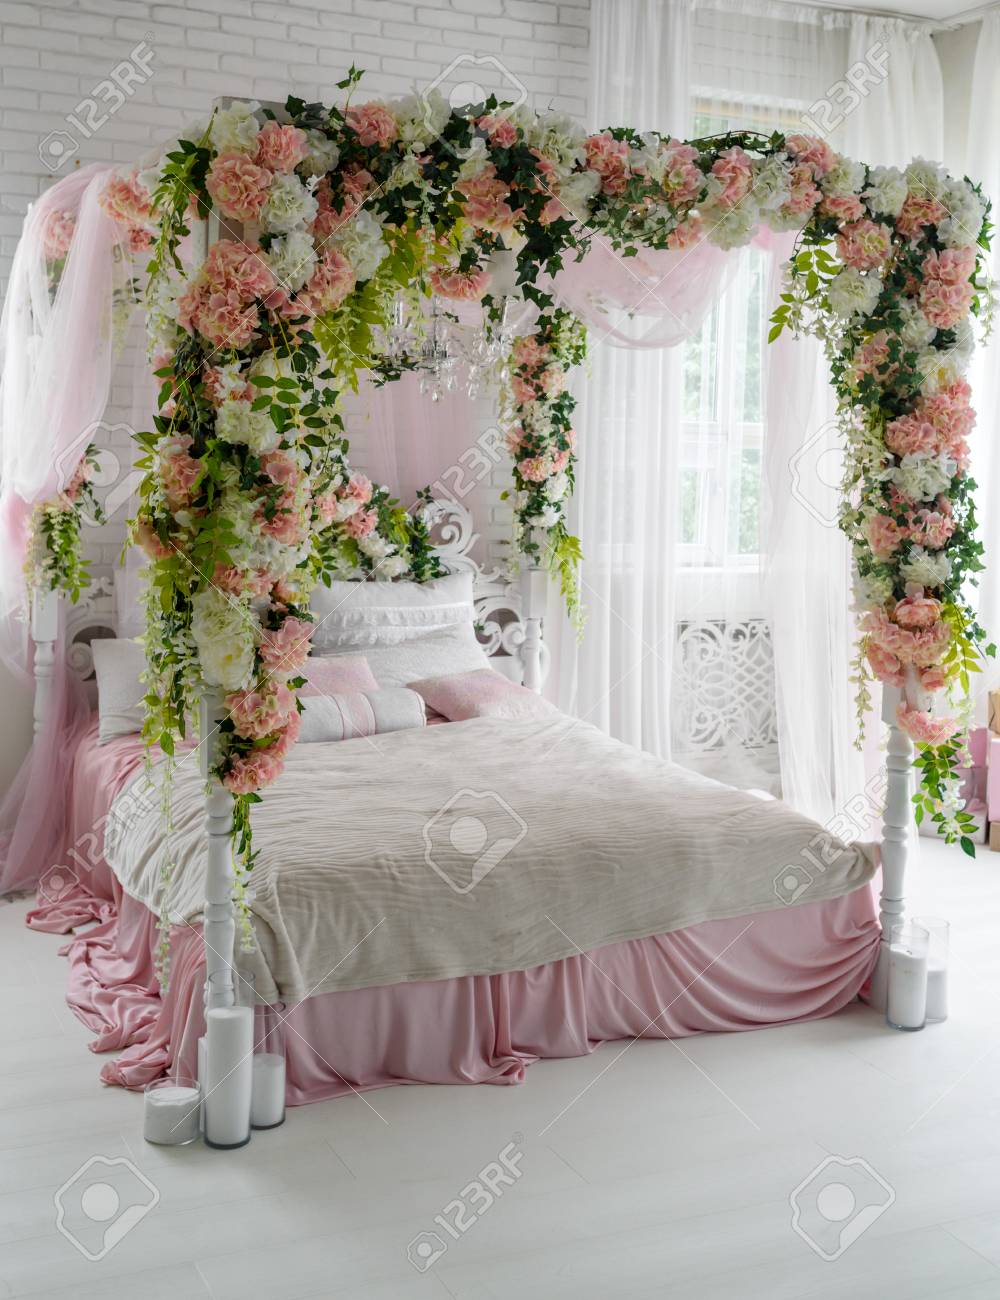 Honeymoon Suite With Canopy Bed Free Space Luxurious Wood Canopy